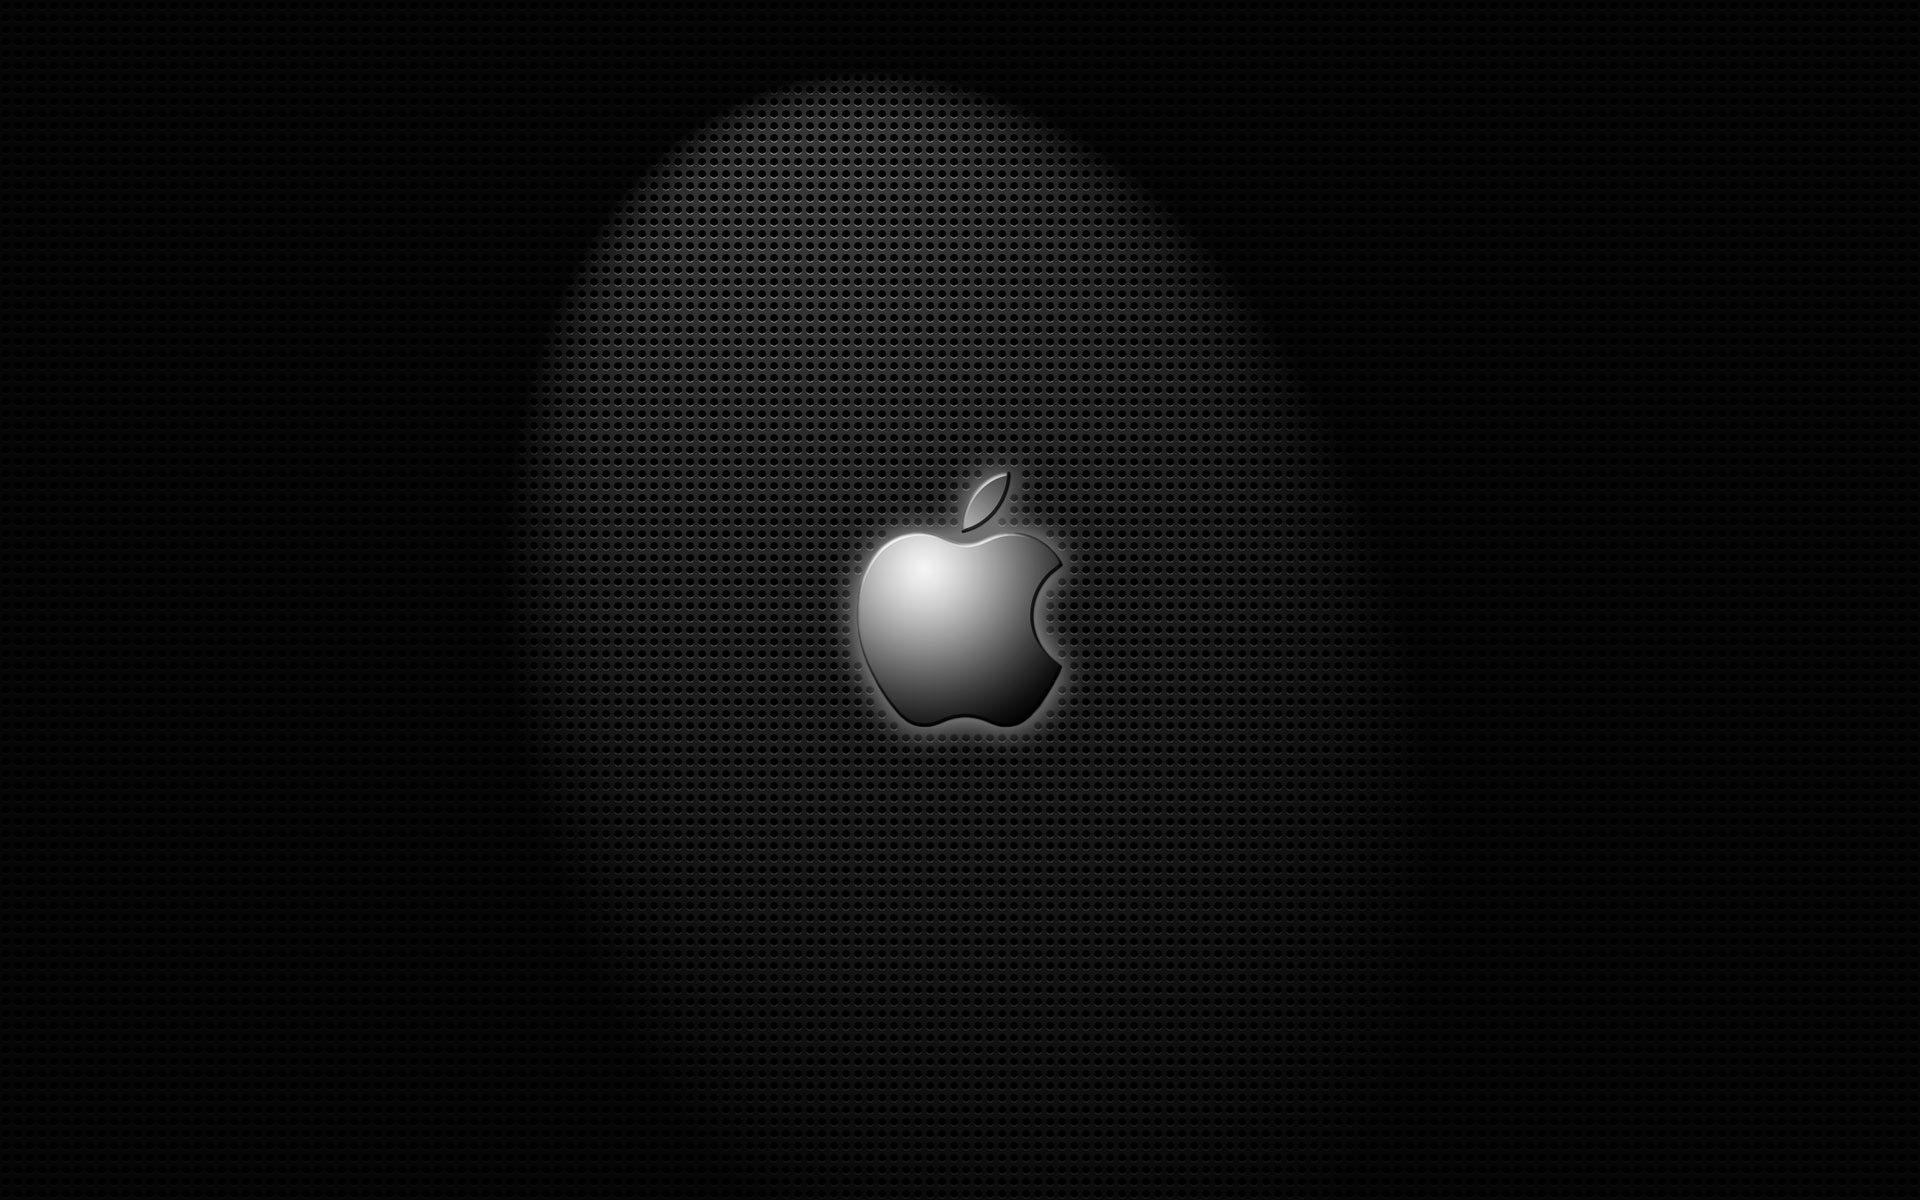 HD Apple wallpaper 18869